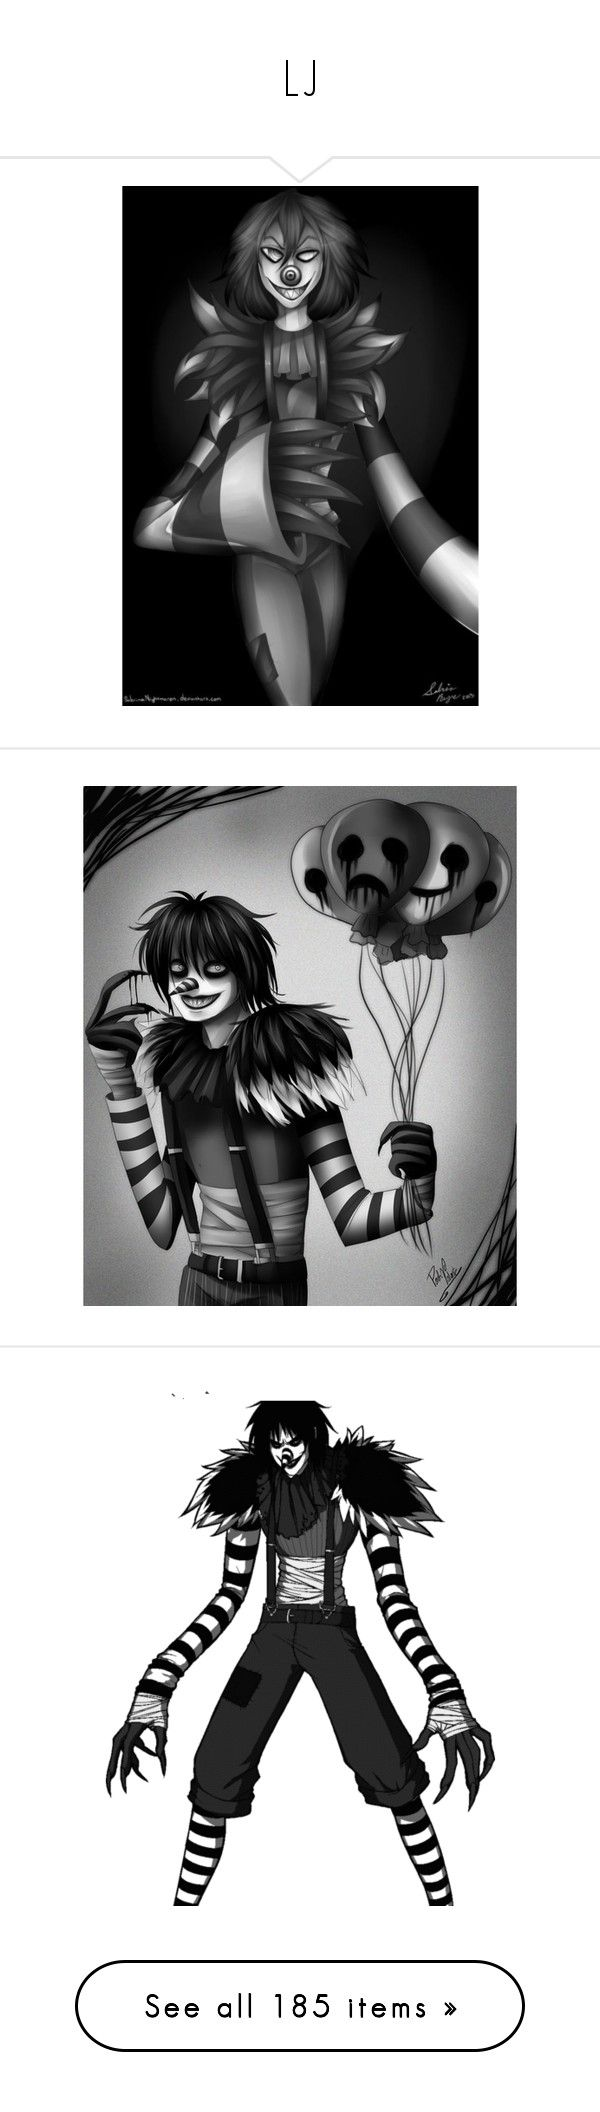 """""""LJ"""" by bluekiller2002 ❤ liked on Polyvore featuring creepypasta, people, laughing jack, pictures, anime, tops, t-shirts, multicolor, long sleeve cotton tops and multi color t shirts"""